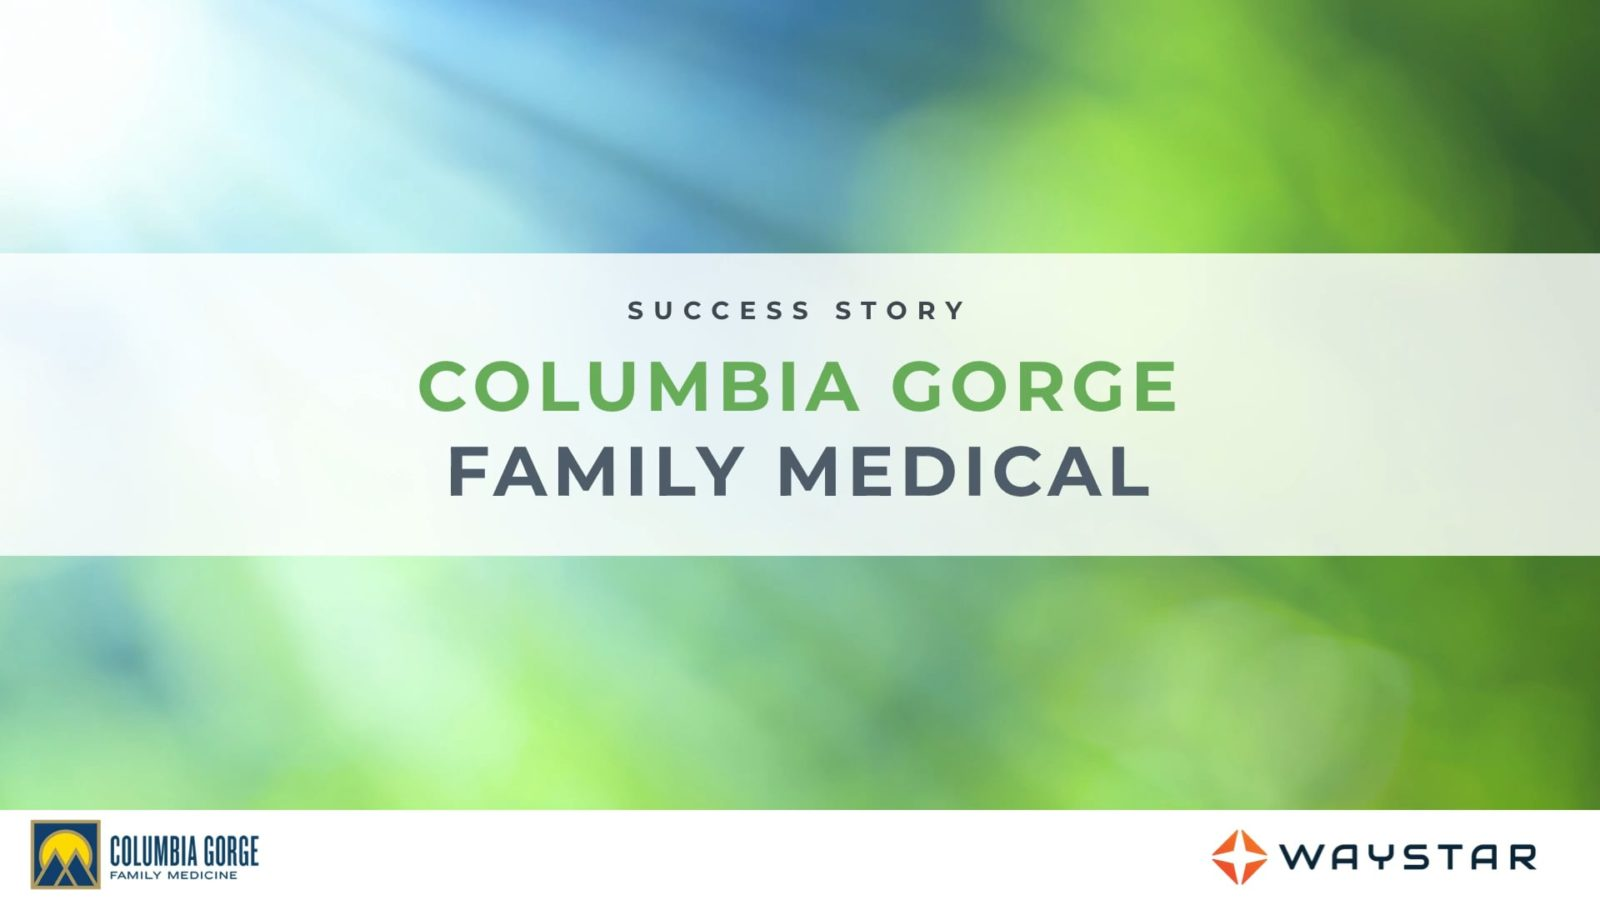 Success story: Columbia Gorge Family Medical